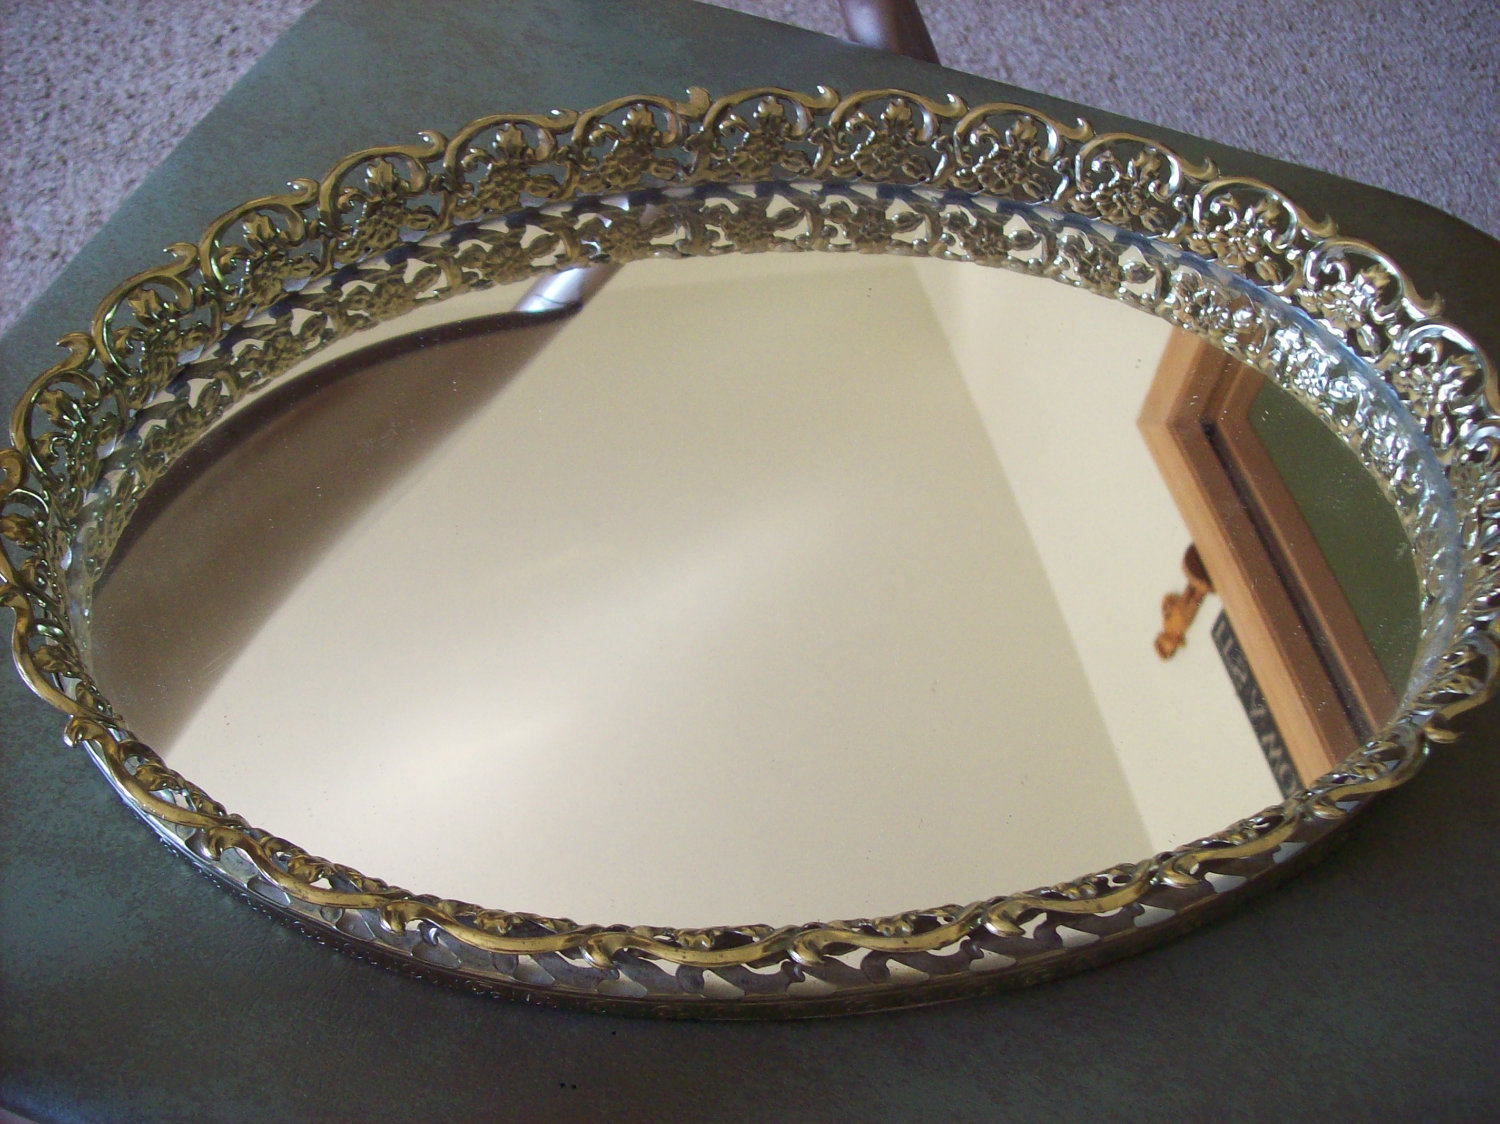 Beautiful Shines Mirrored Vanity Tray for Home Accesories Ideas: Mesmerizing Mirror Glass Mirrored Vanity Tray